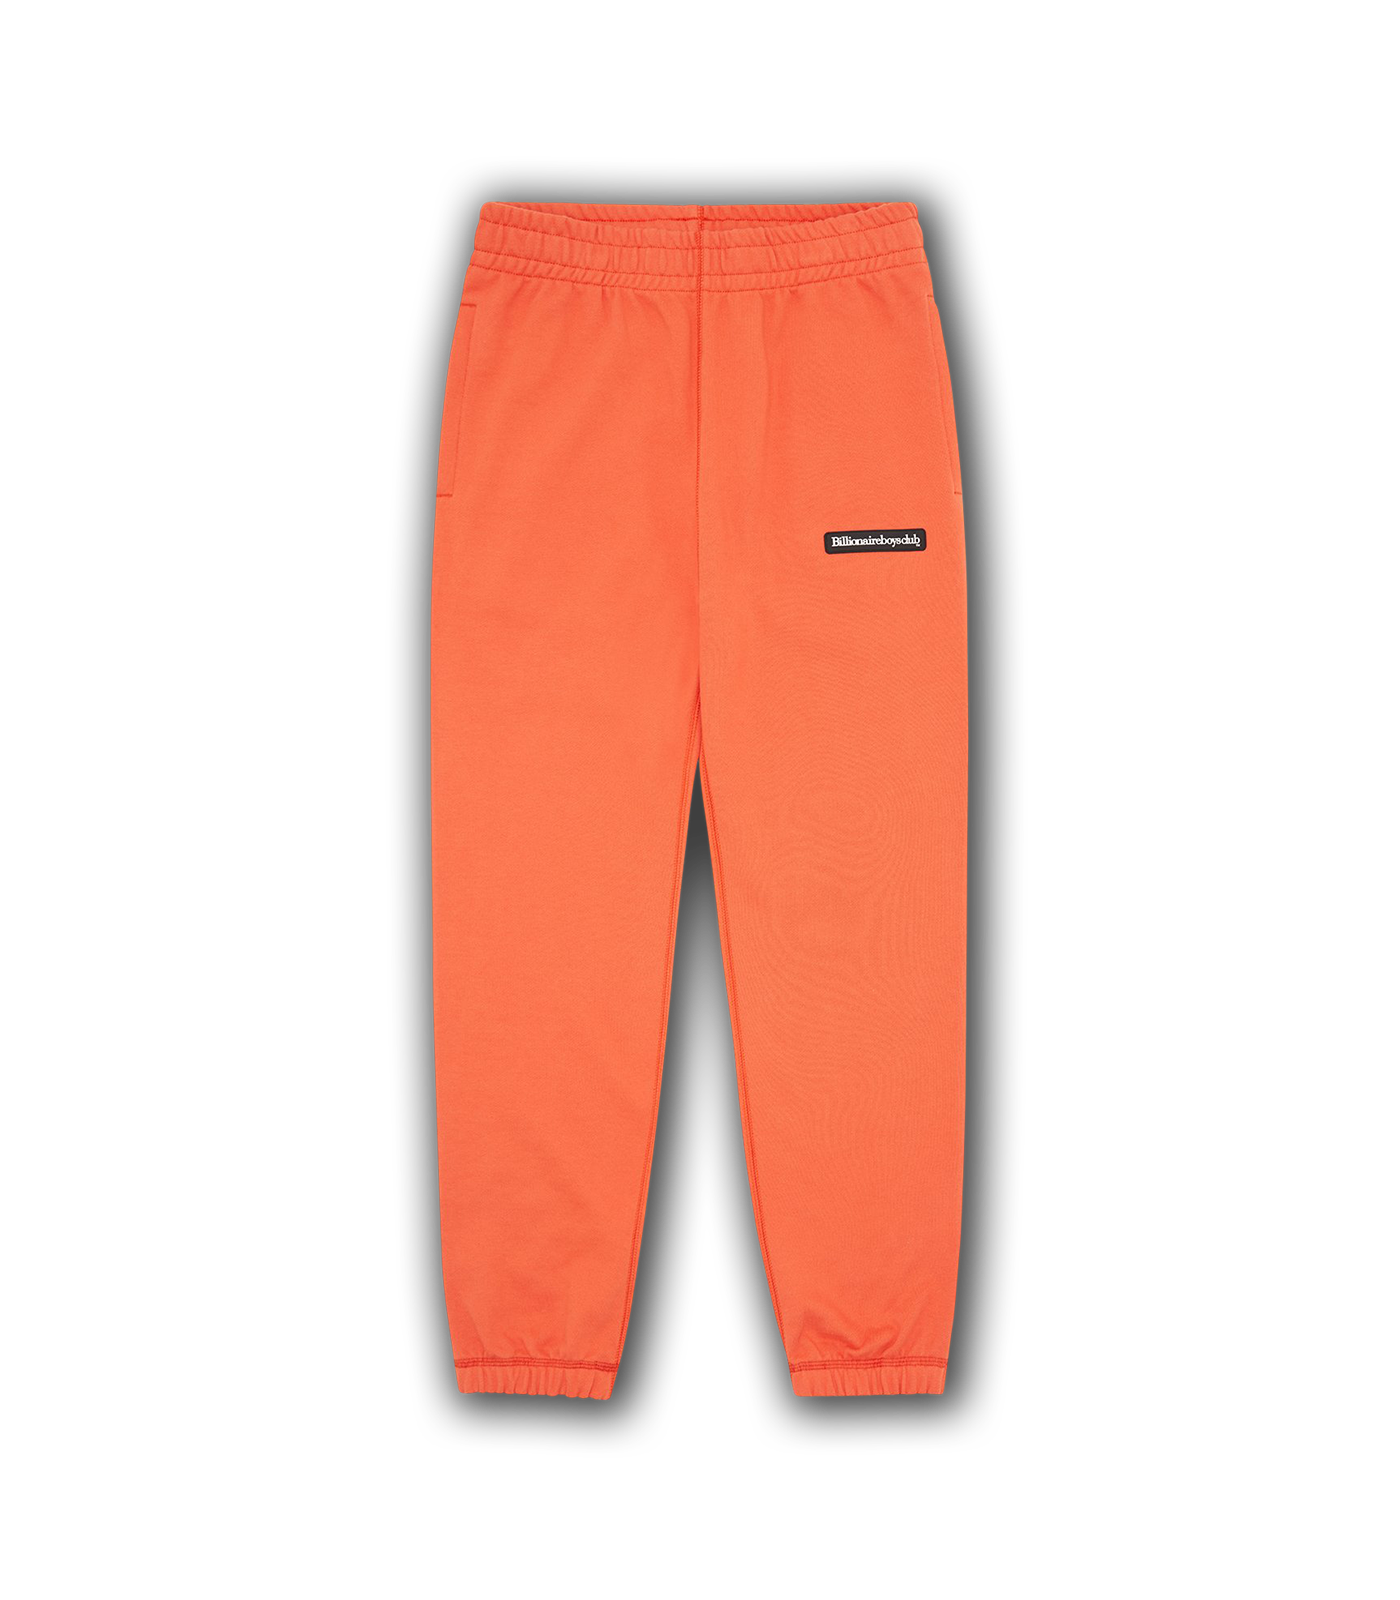 RUBBER PATCH SWEATPANTS - ORANGE